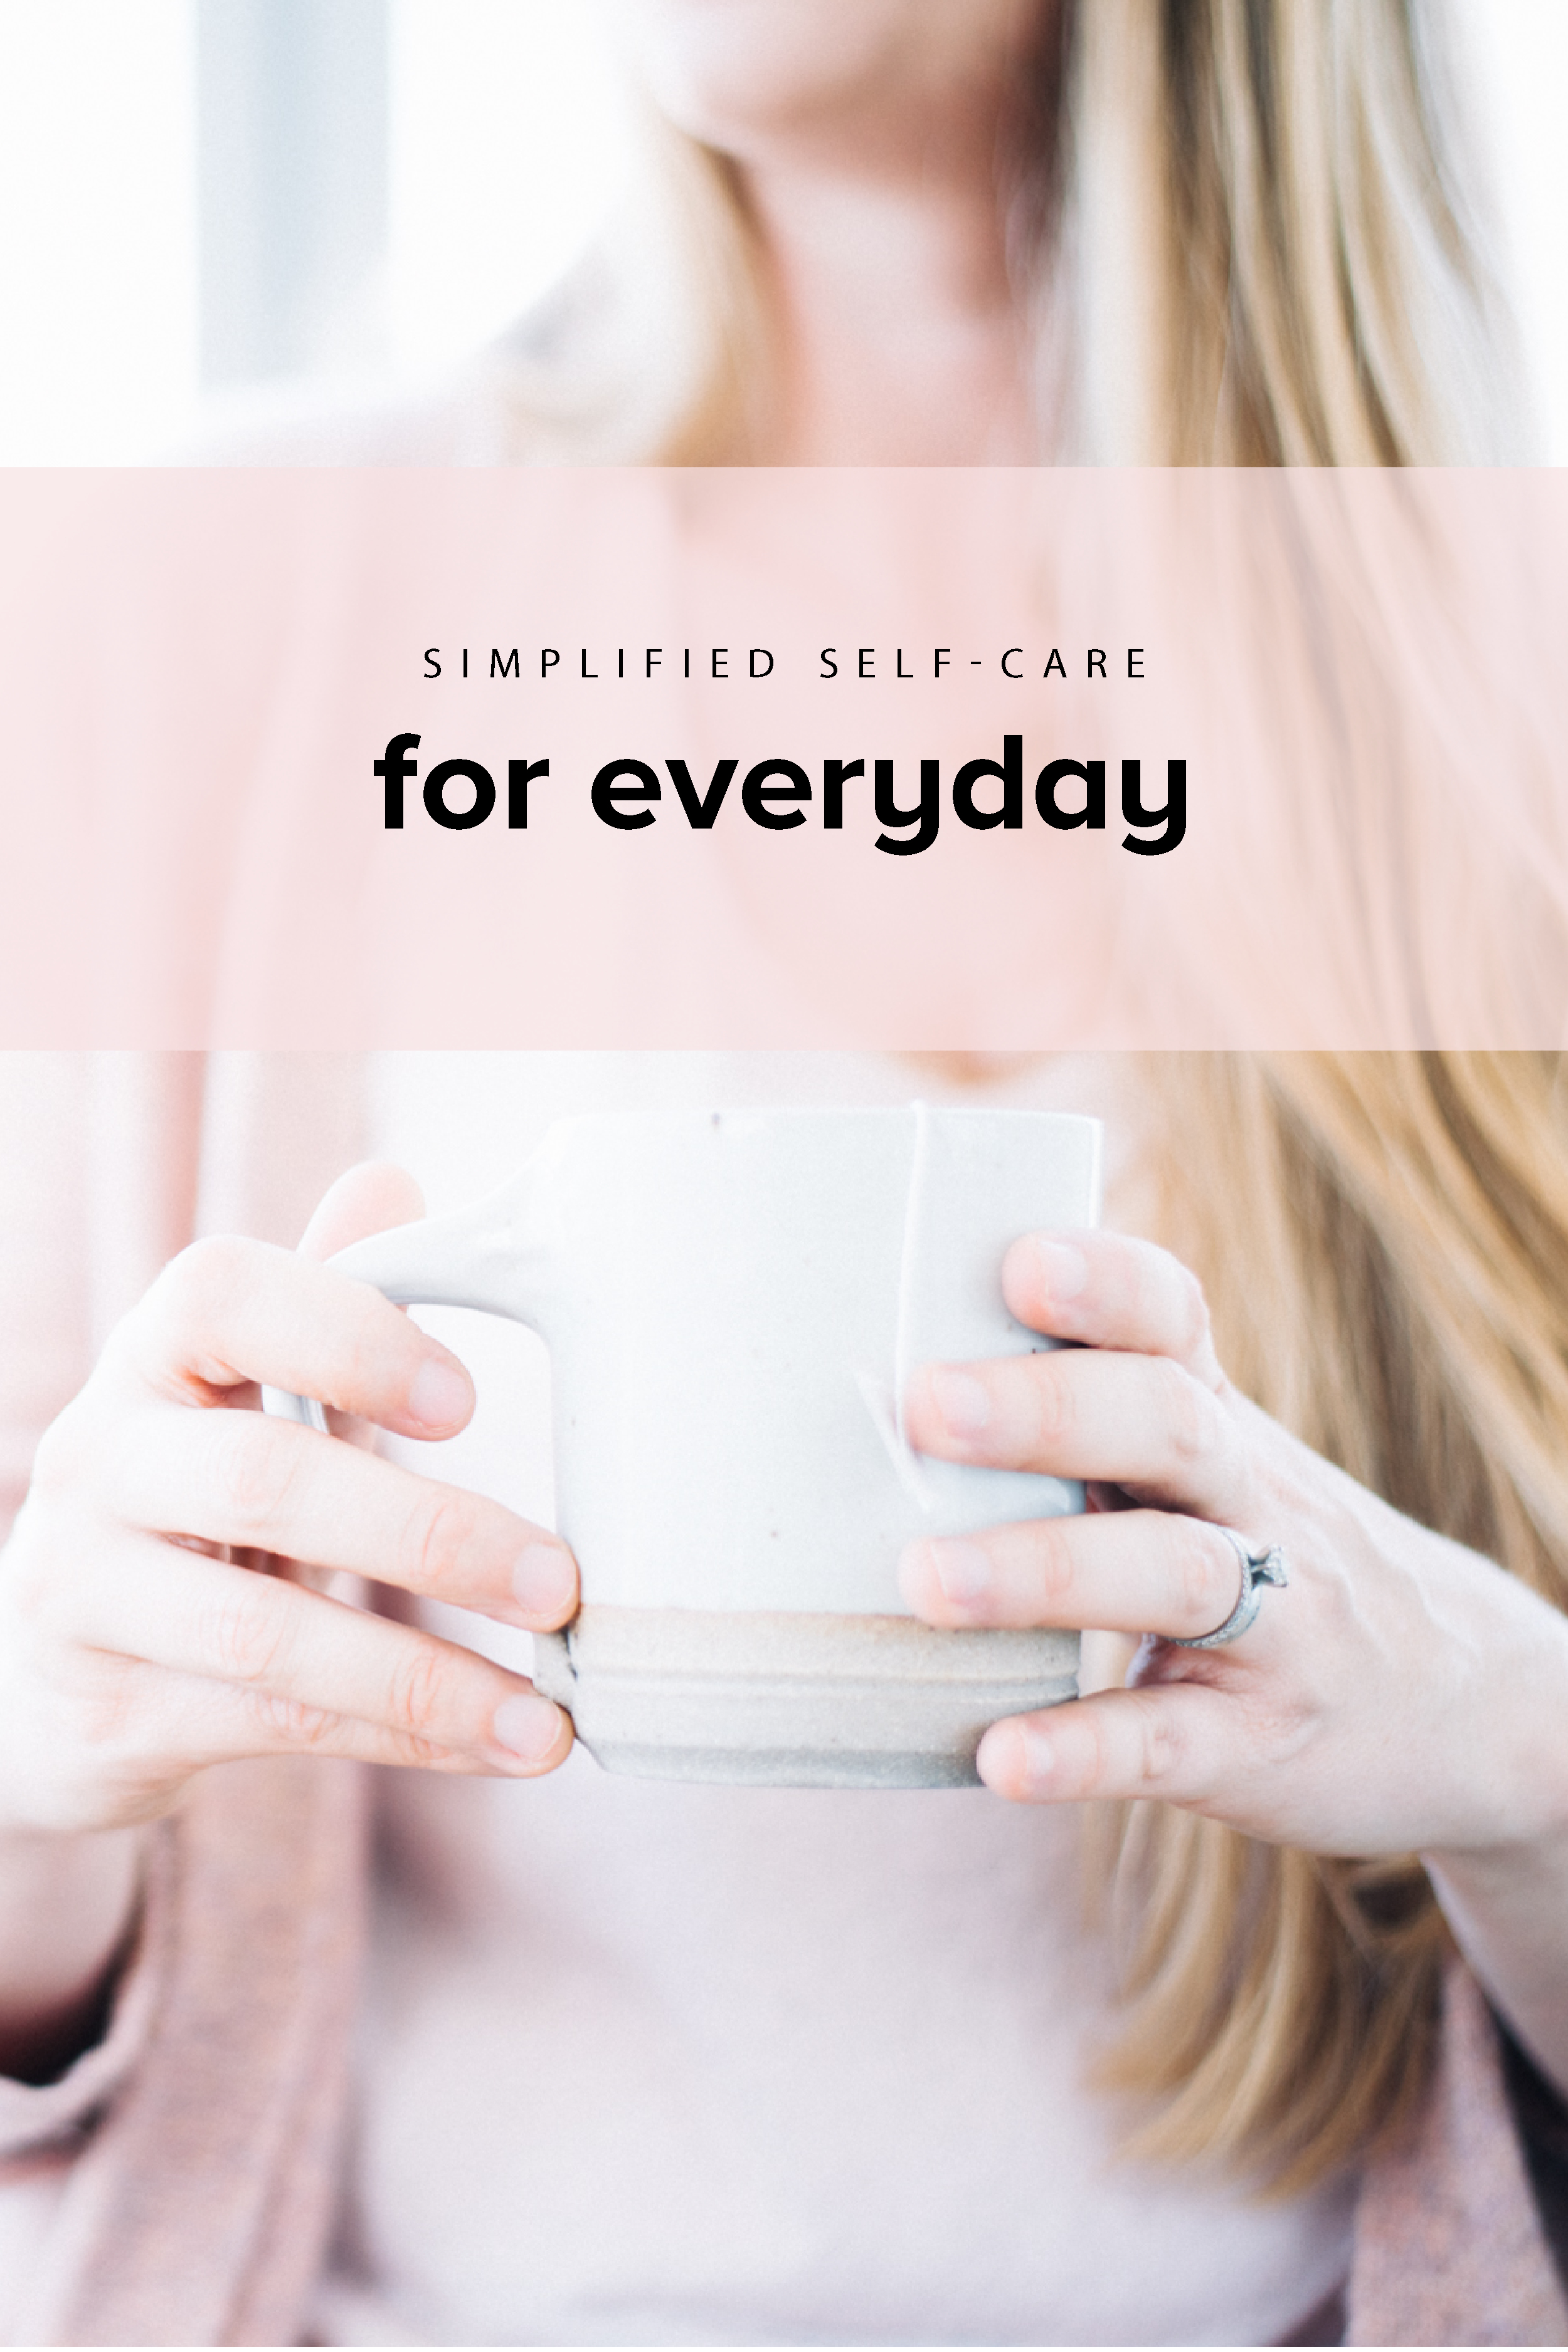 Simplified Self Care for Everyday